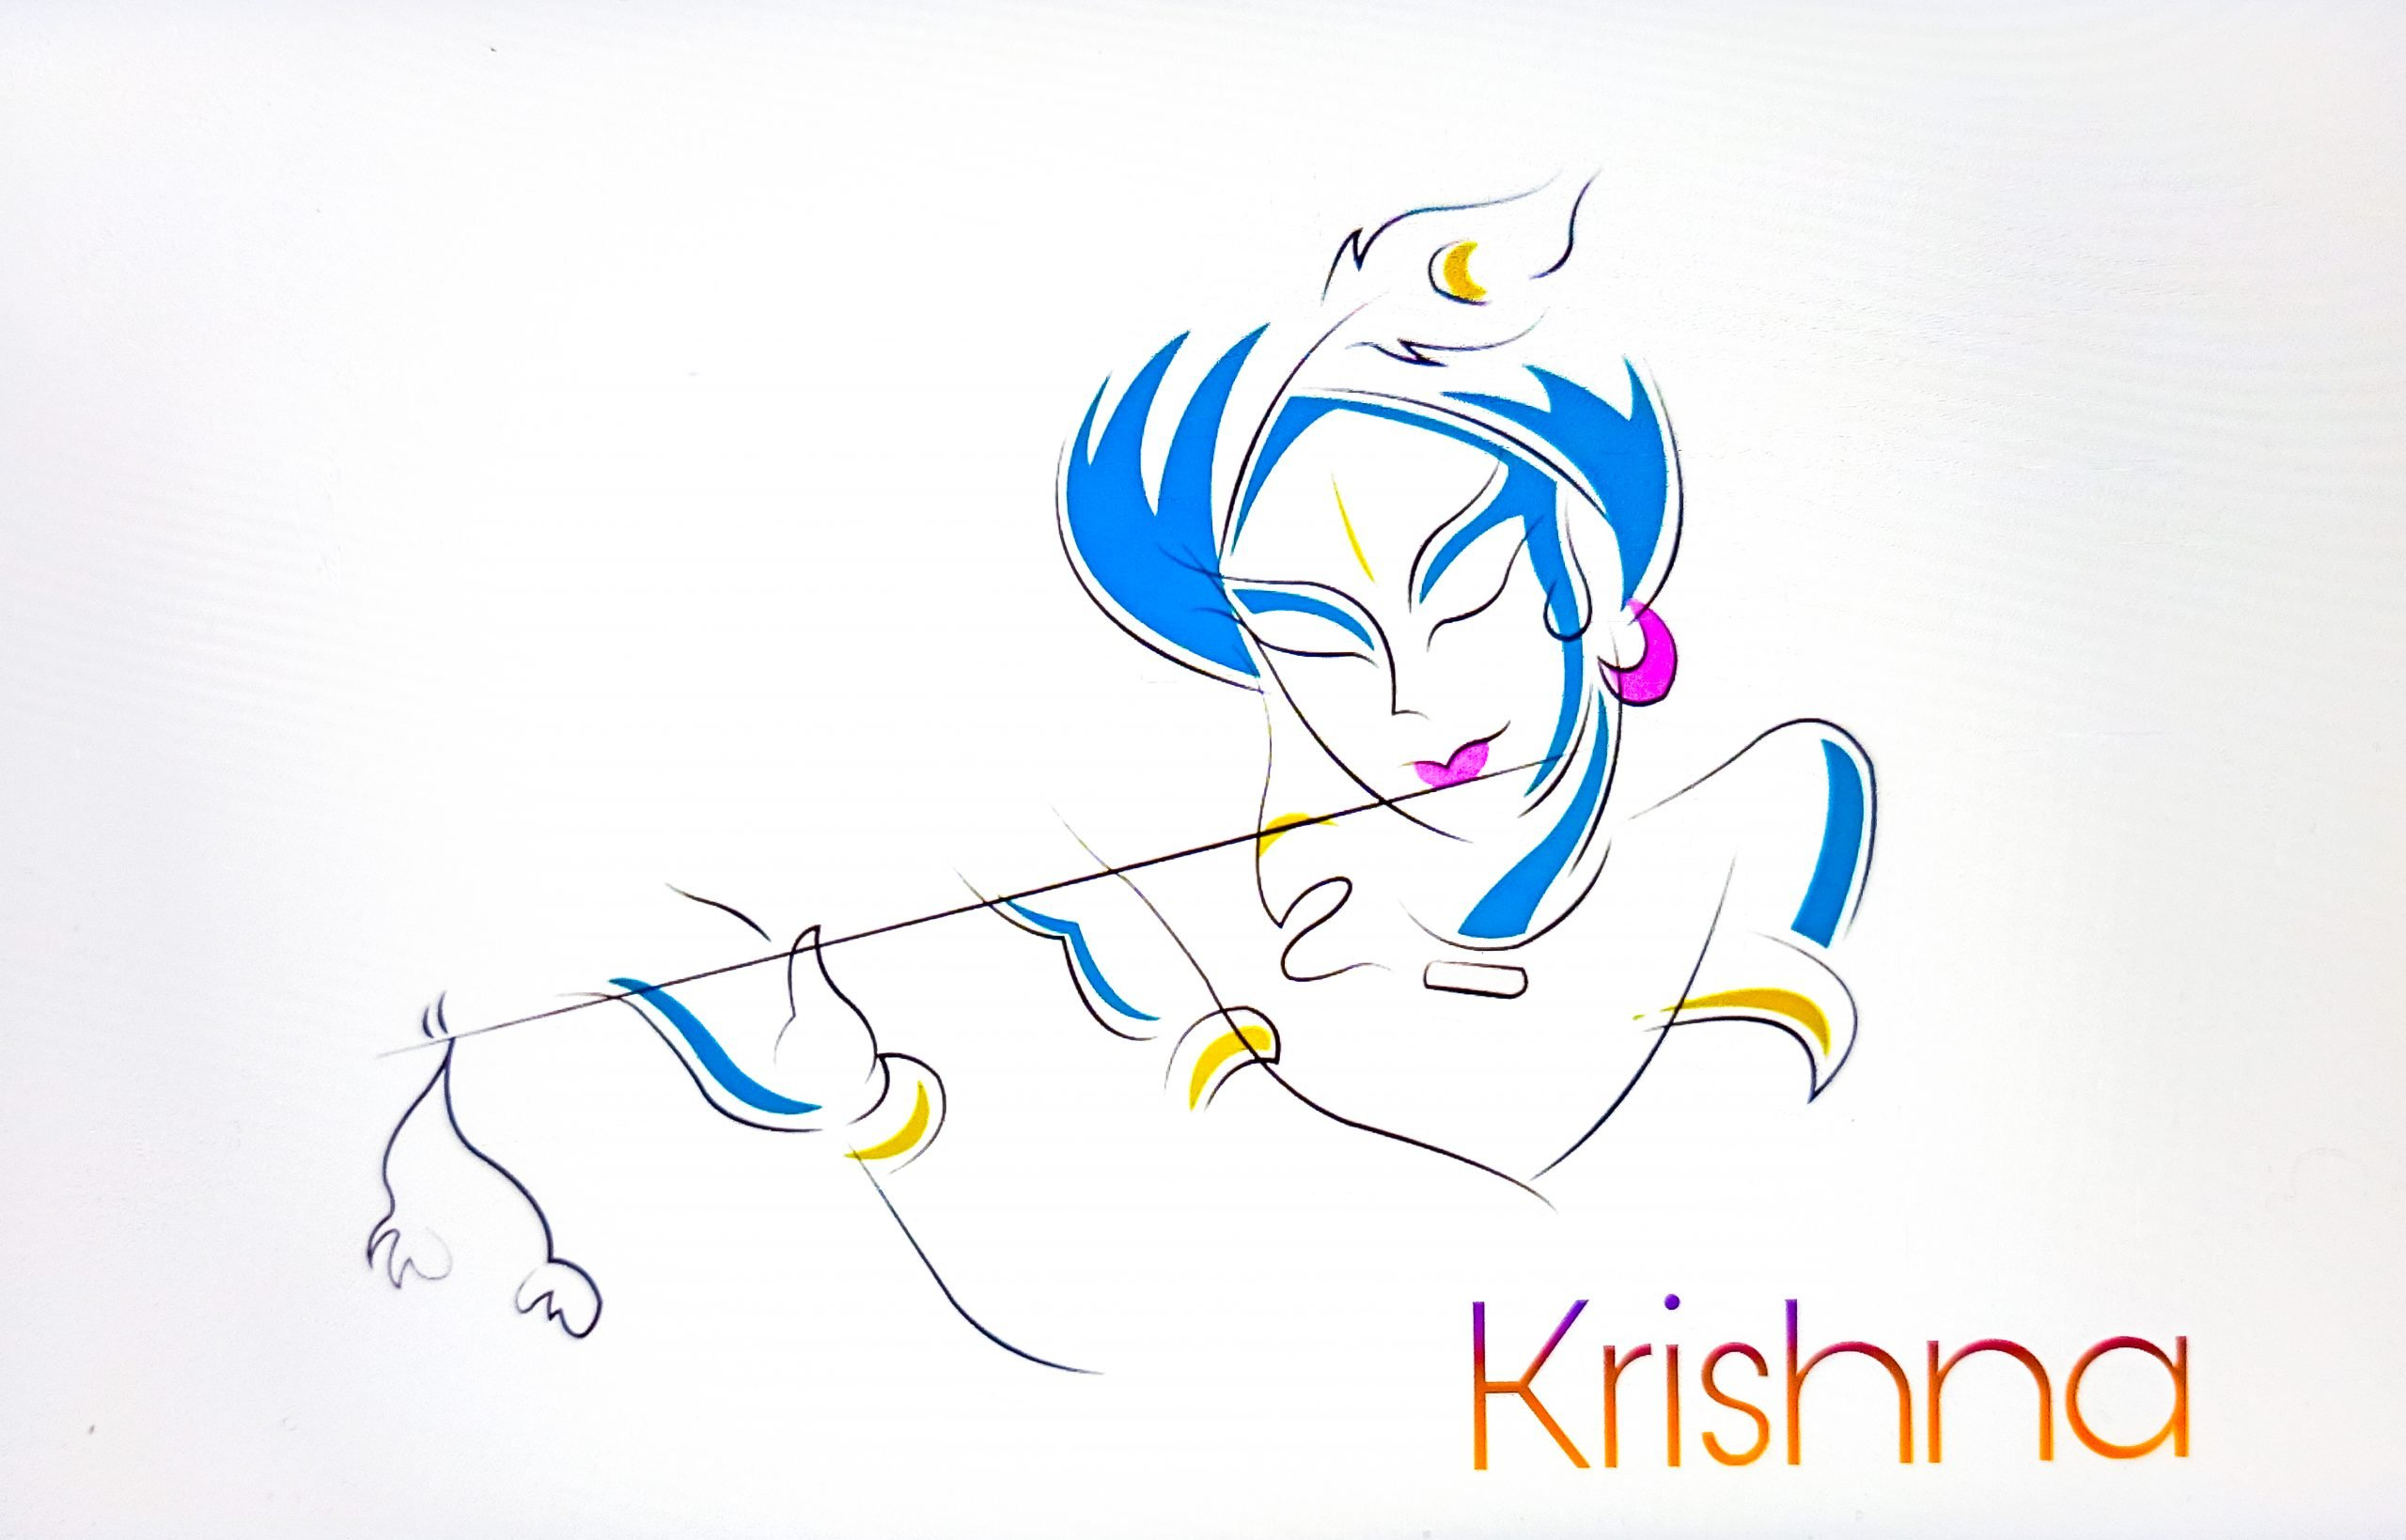 Lord Krishna illustration